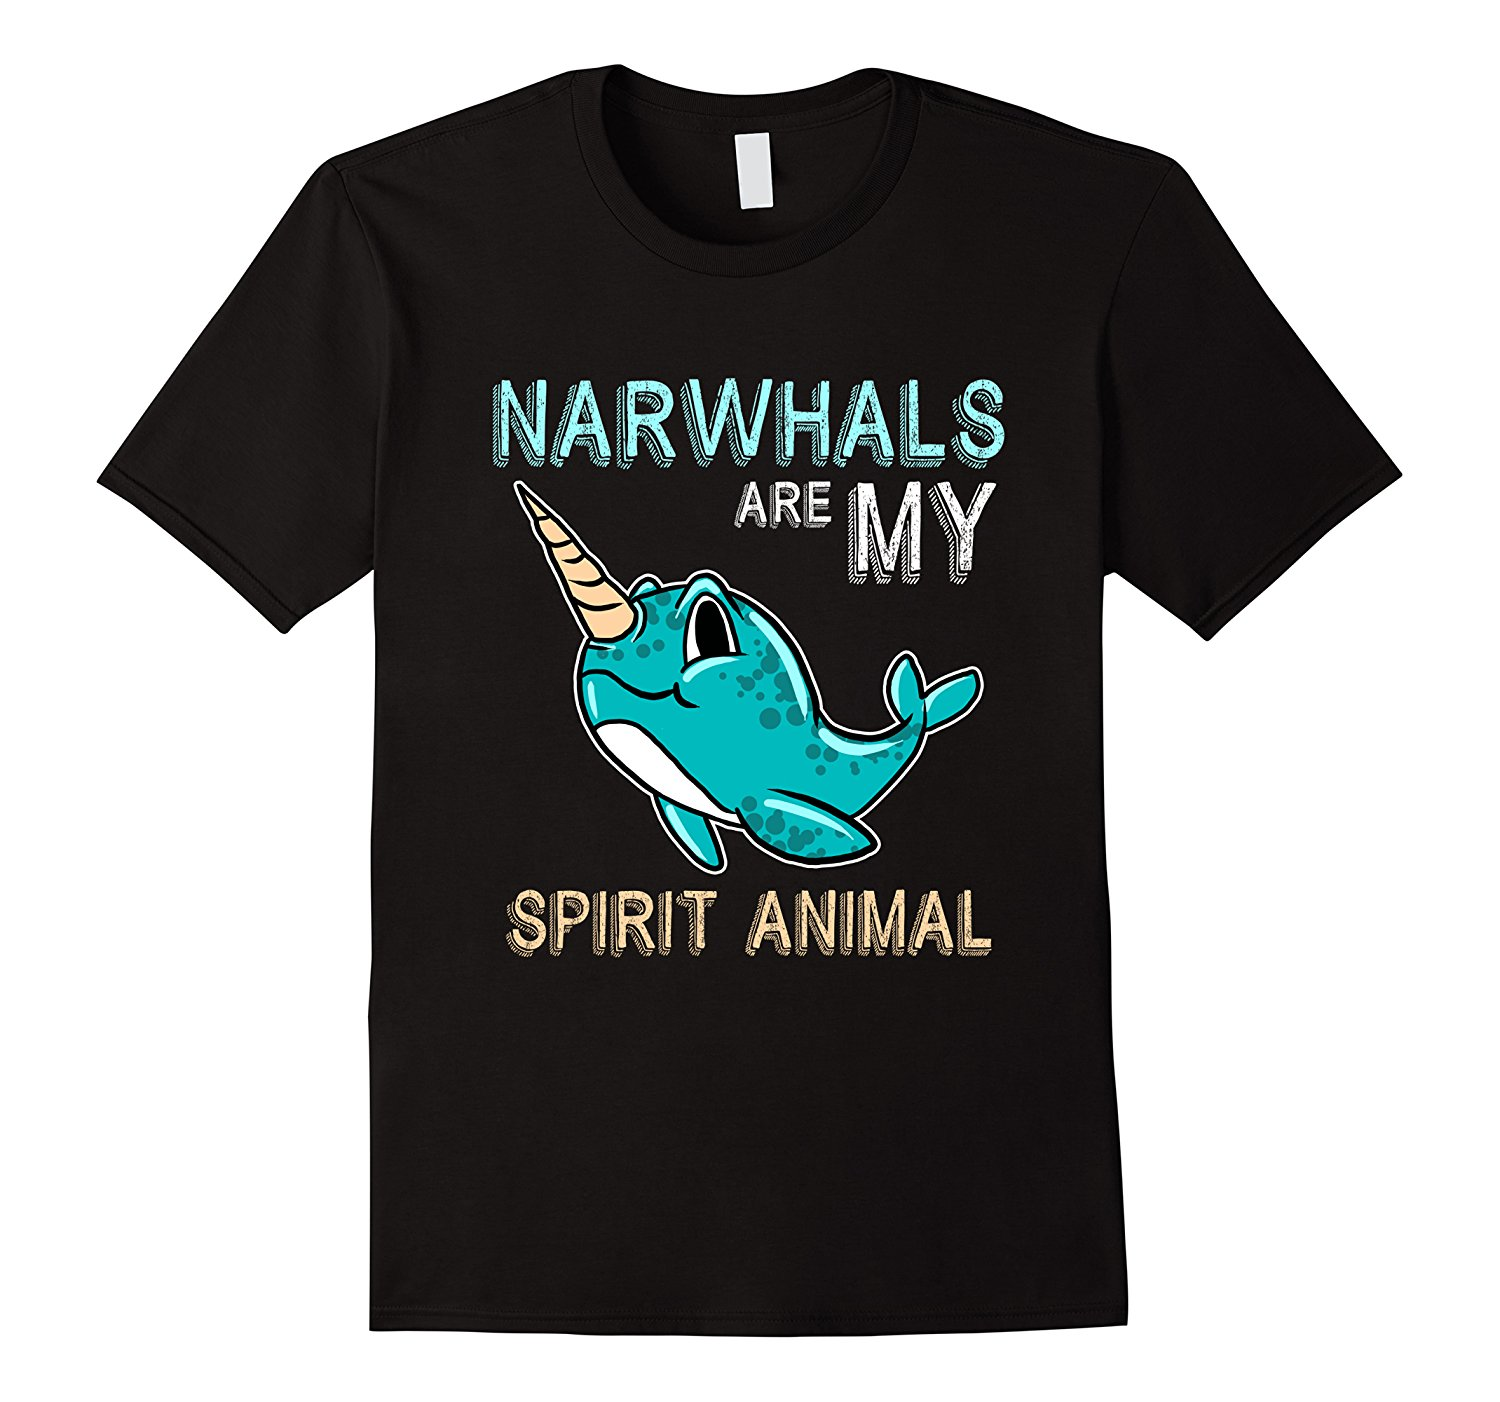 Narwhal Are My Spirit Animal Funny Cute Sea Creature T-Shirt Hot Sale Clothes Fashion Logo Printing T Shirts Top Tee